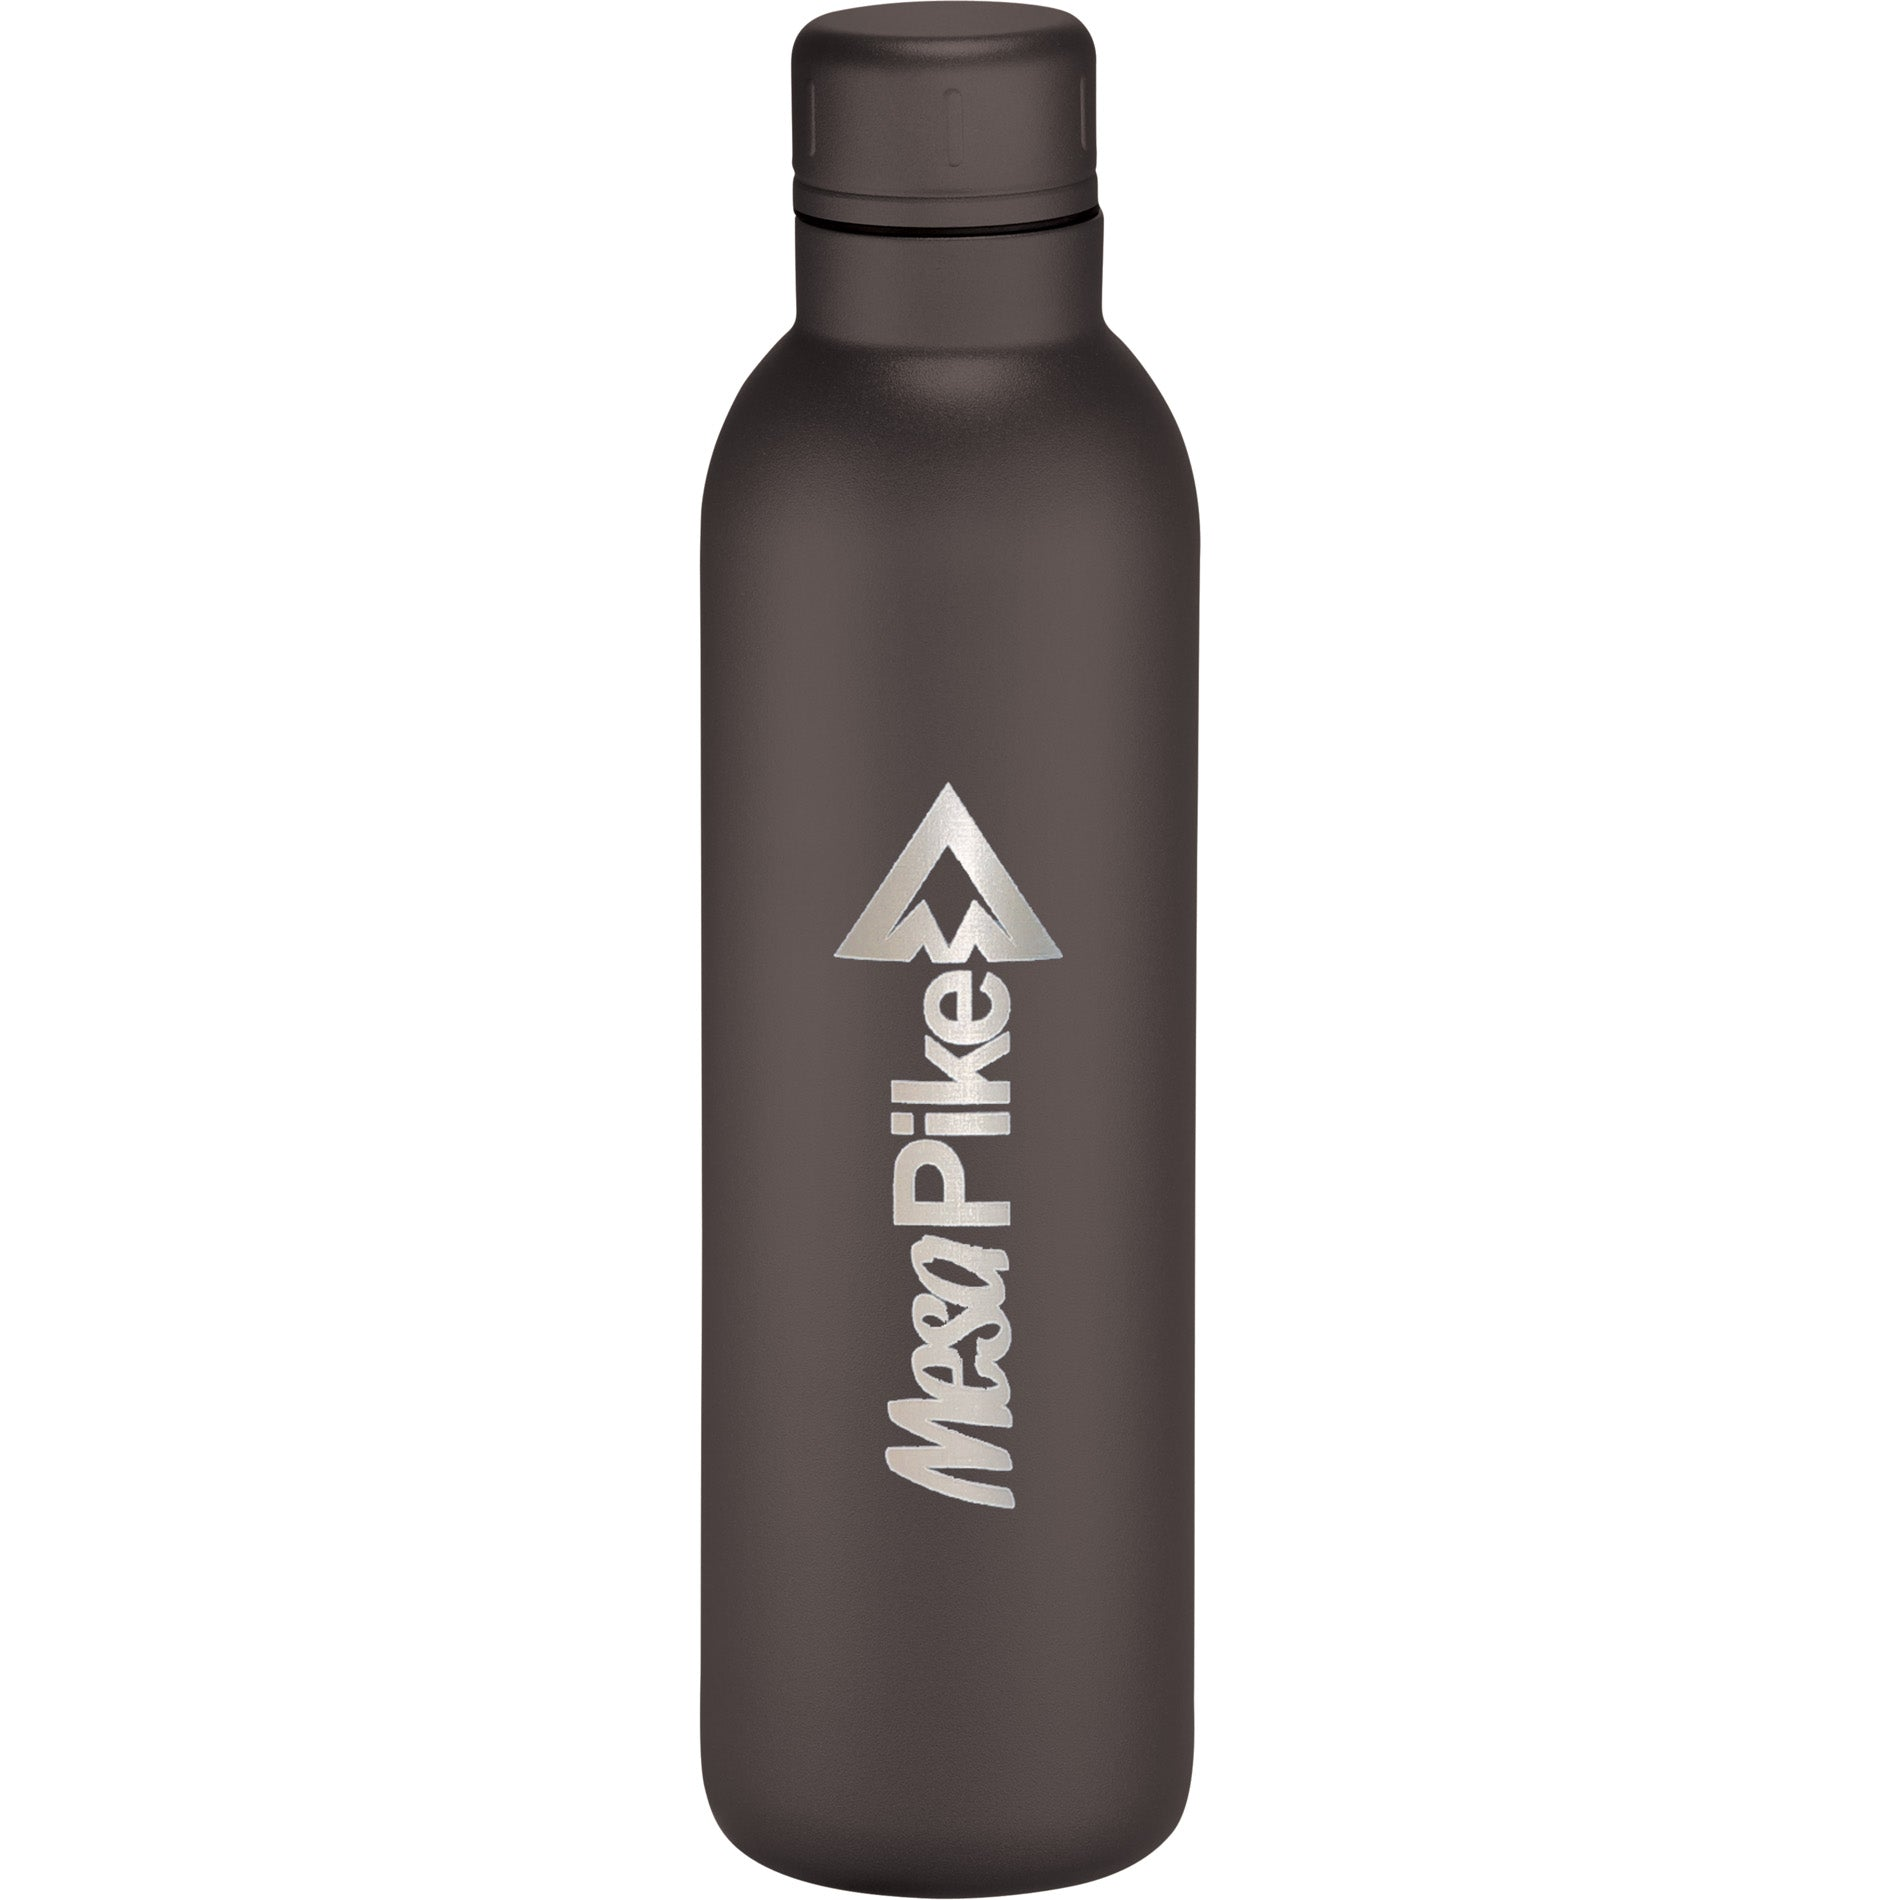 LEEDS THOR COPPER VACUUM INSULATED 17 OZ BOTTLE